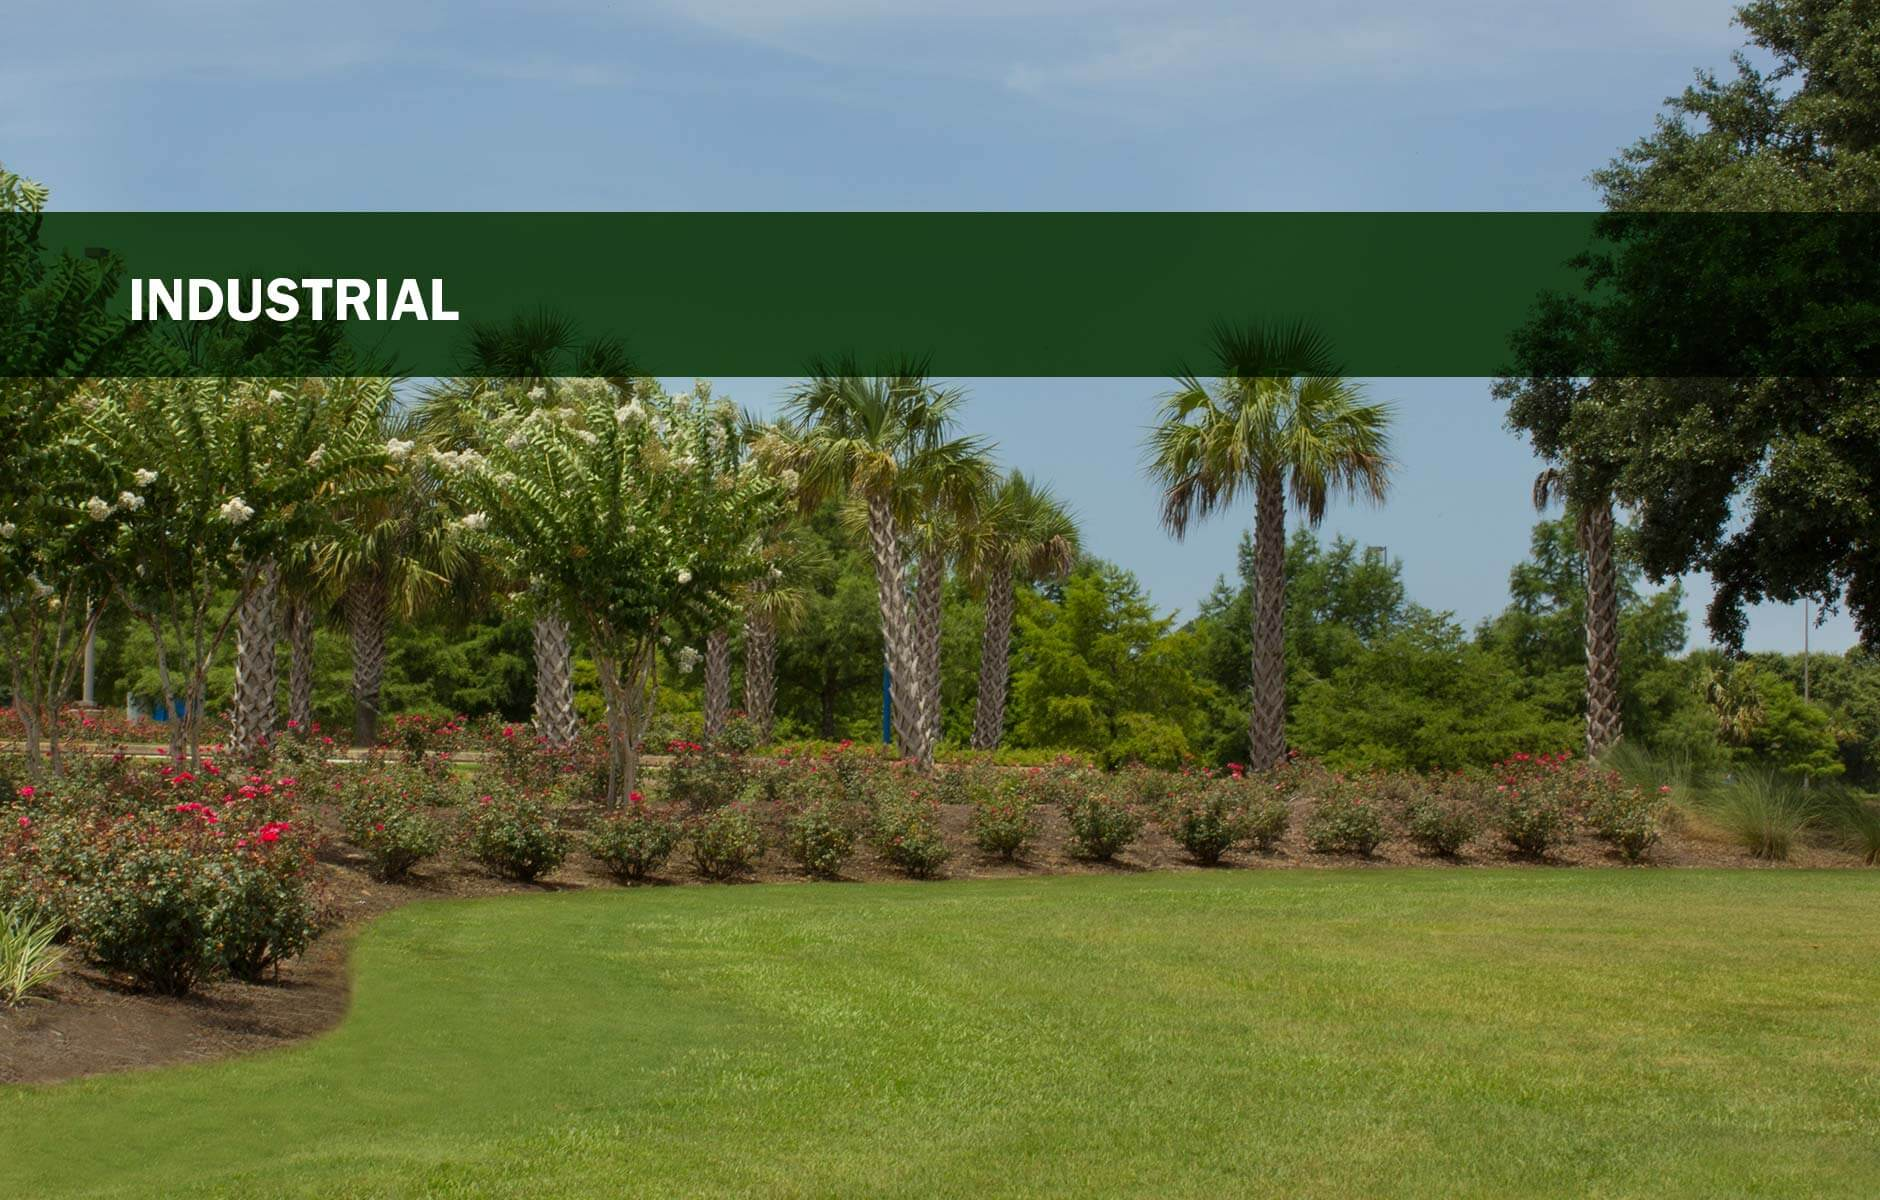 Grass, shrubbery and palm trees on an industrial property in Mobile, Alabama